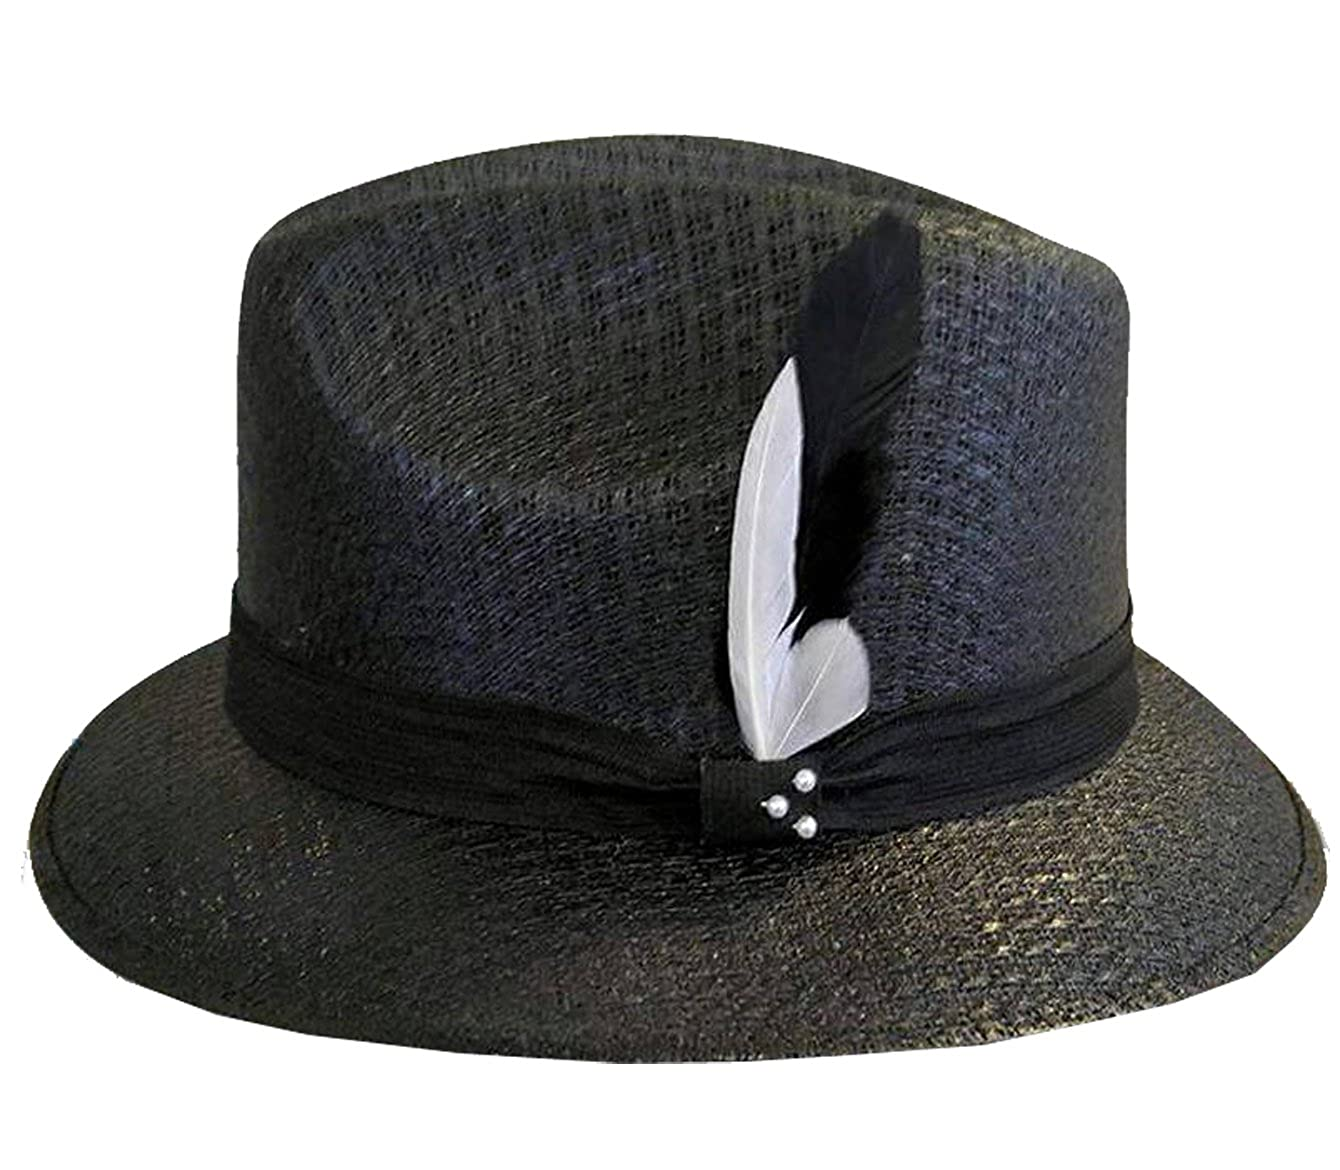 Black Pachuco Fedora Derby with White   Black Feather Lowrider Brim (57) at  Amazon Men s Clothing store  8ebd0c50677